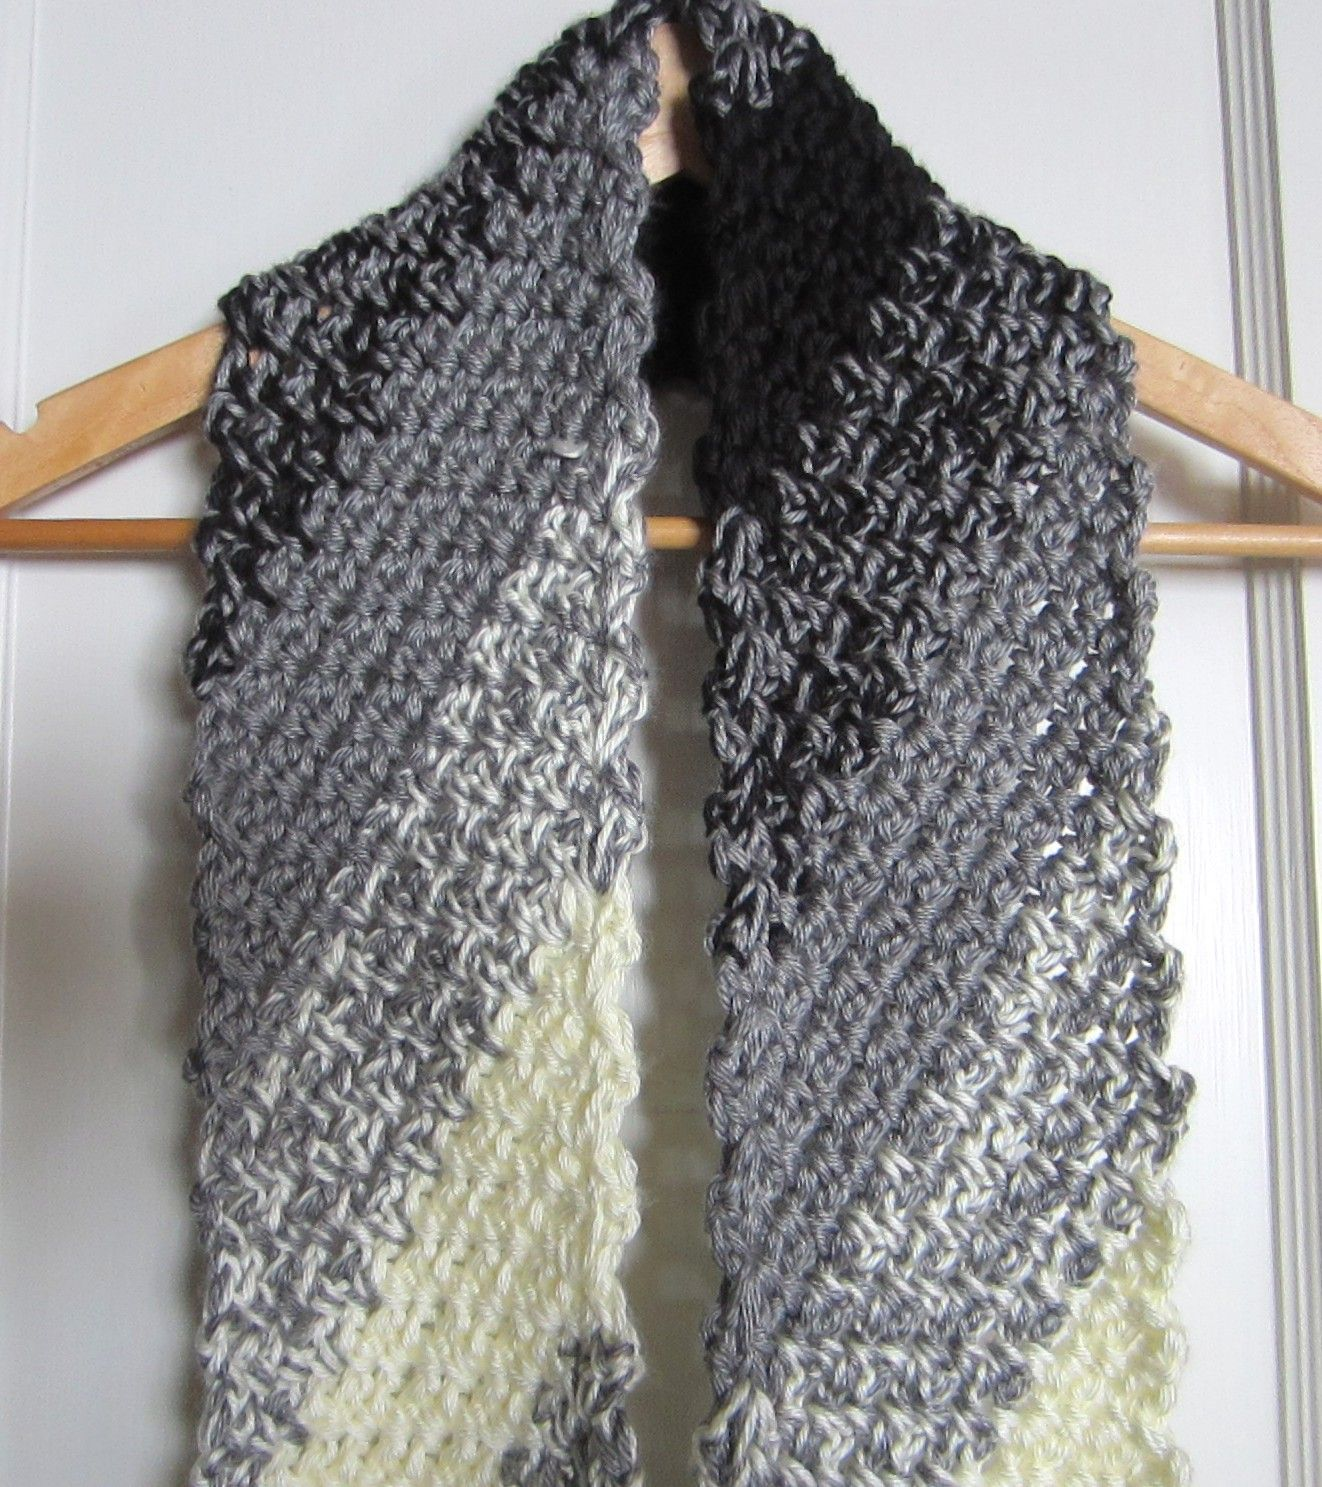 A New Scarf       Diagonal Crochet-In Black, Grey and White